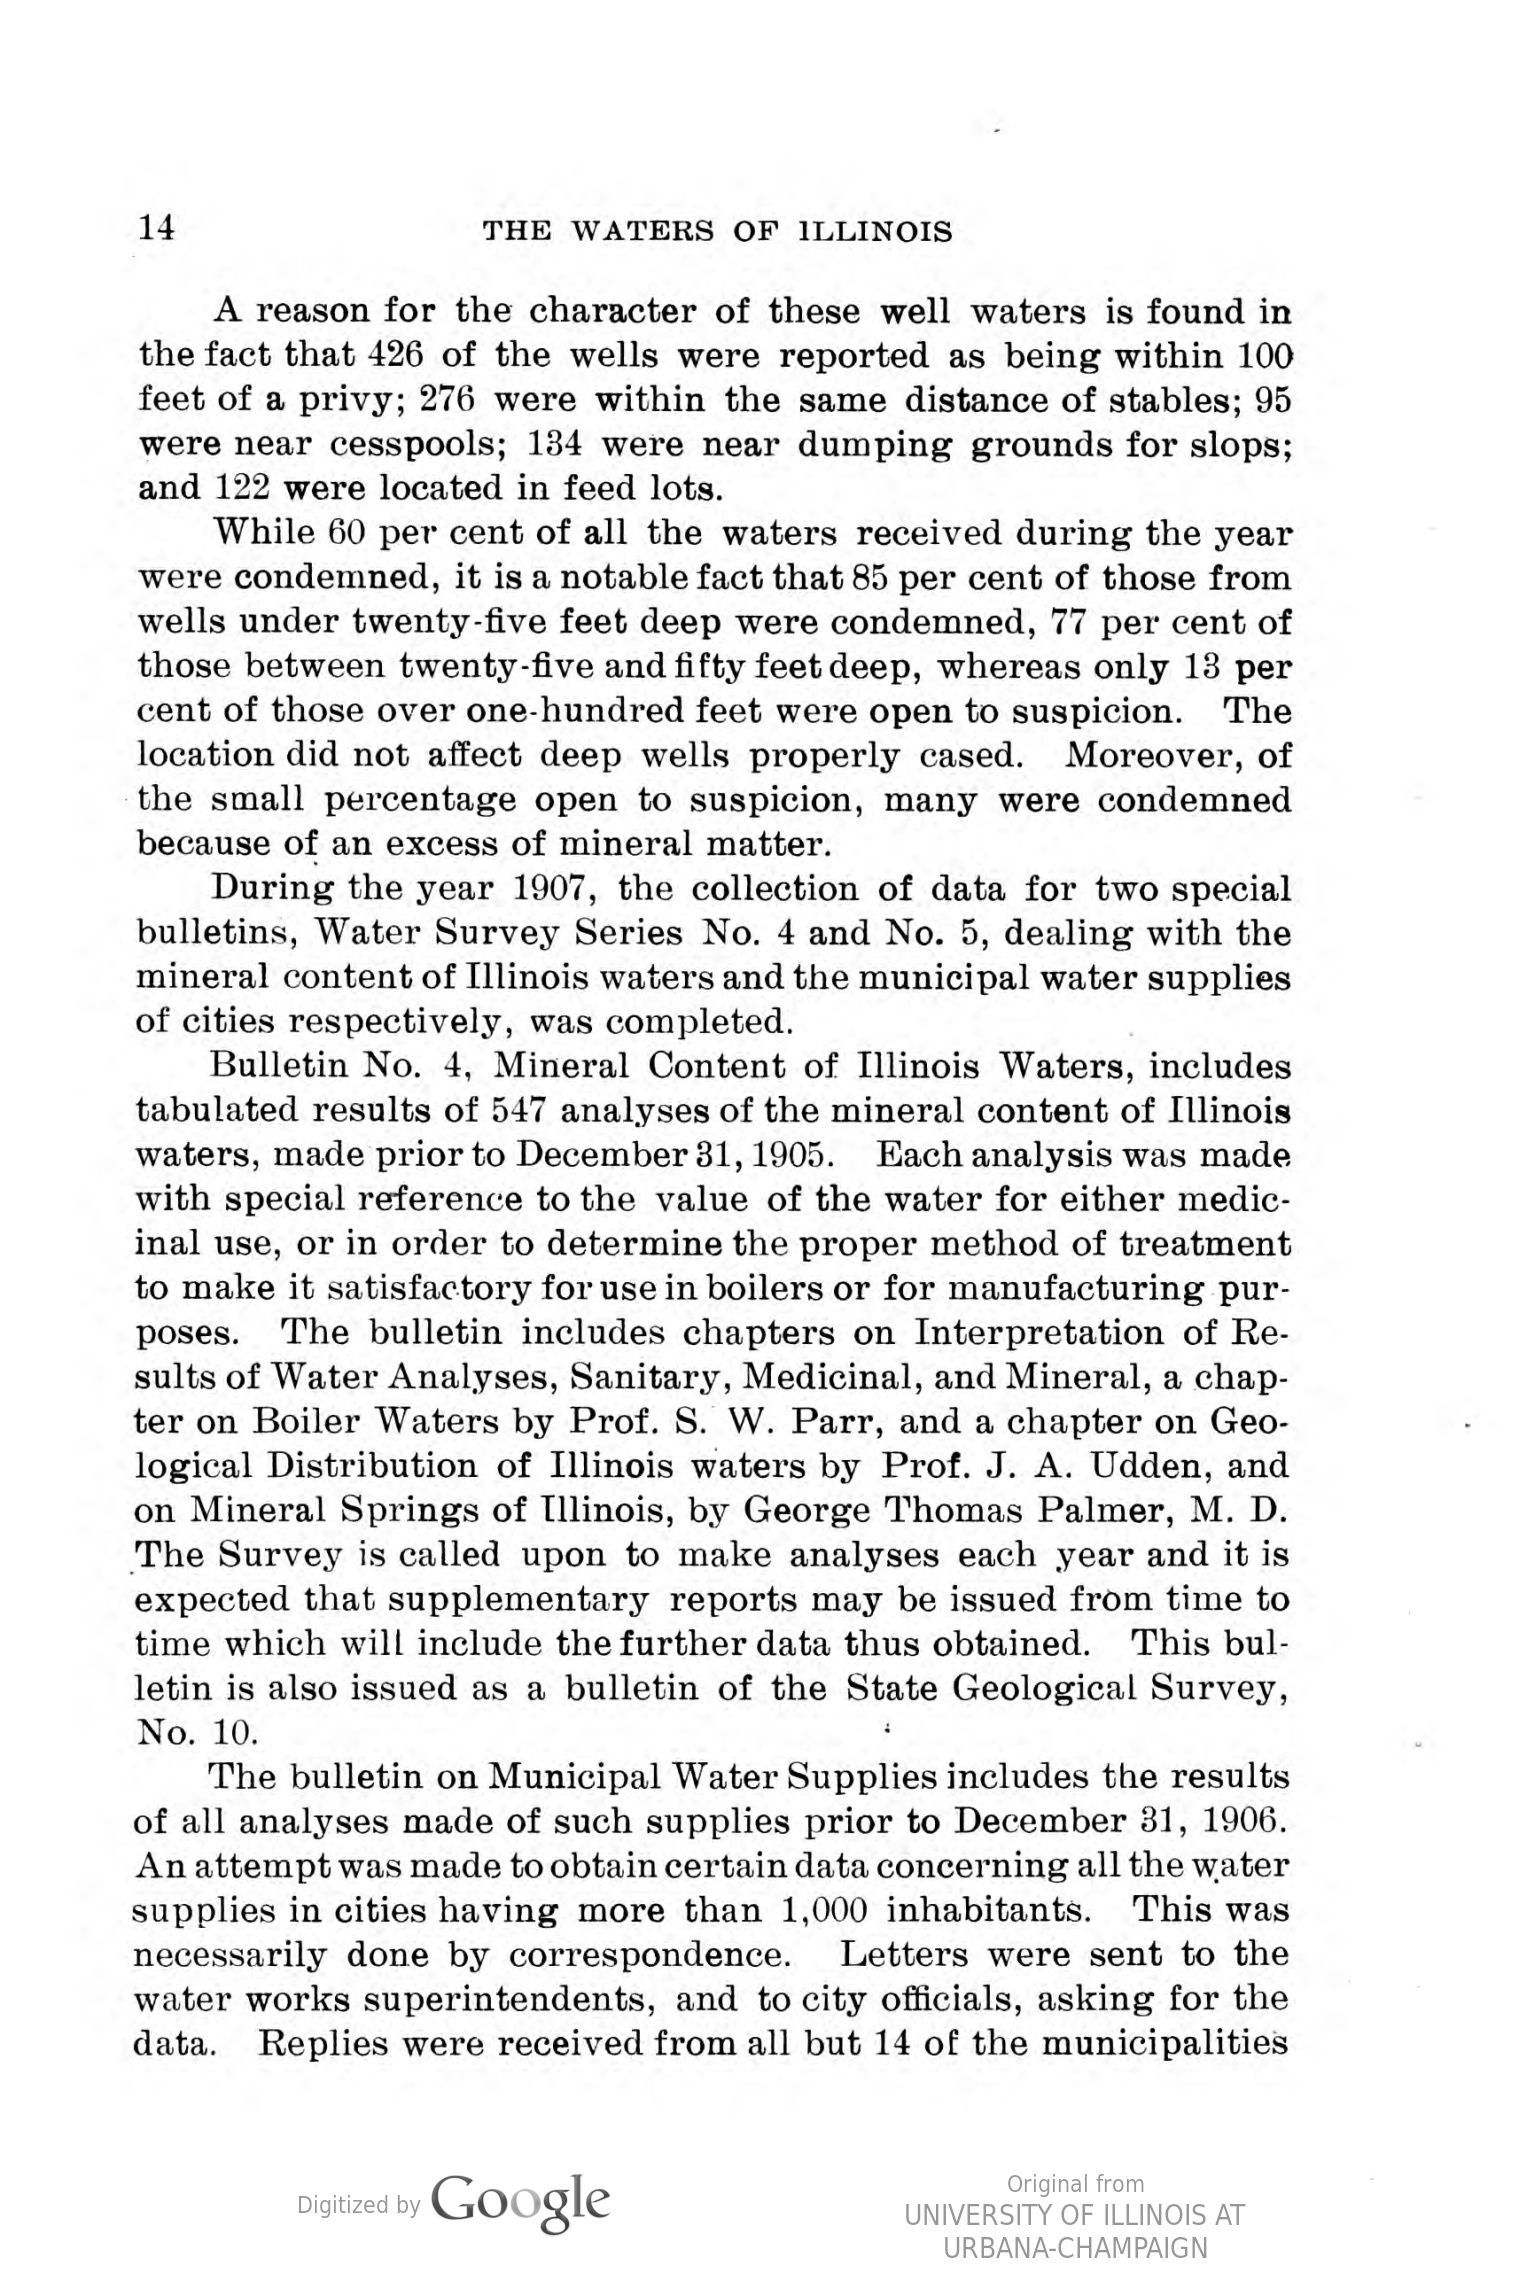 Two photographs of the Bacteriological Laboratory of ISWS, showing lab benches and equipment